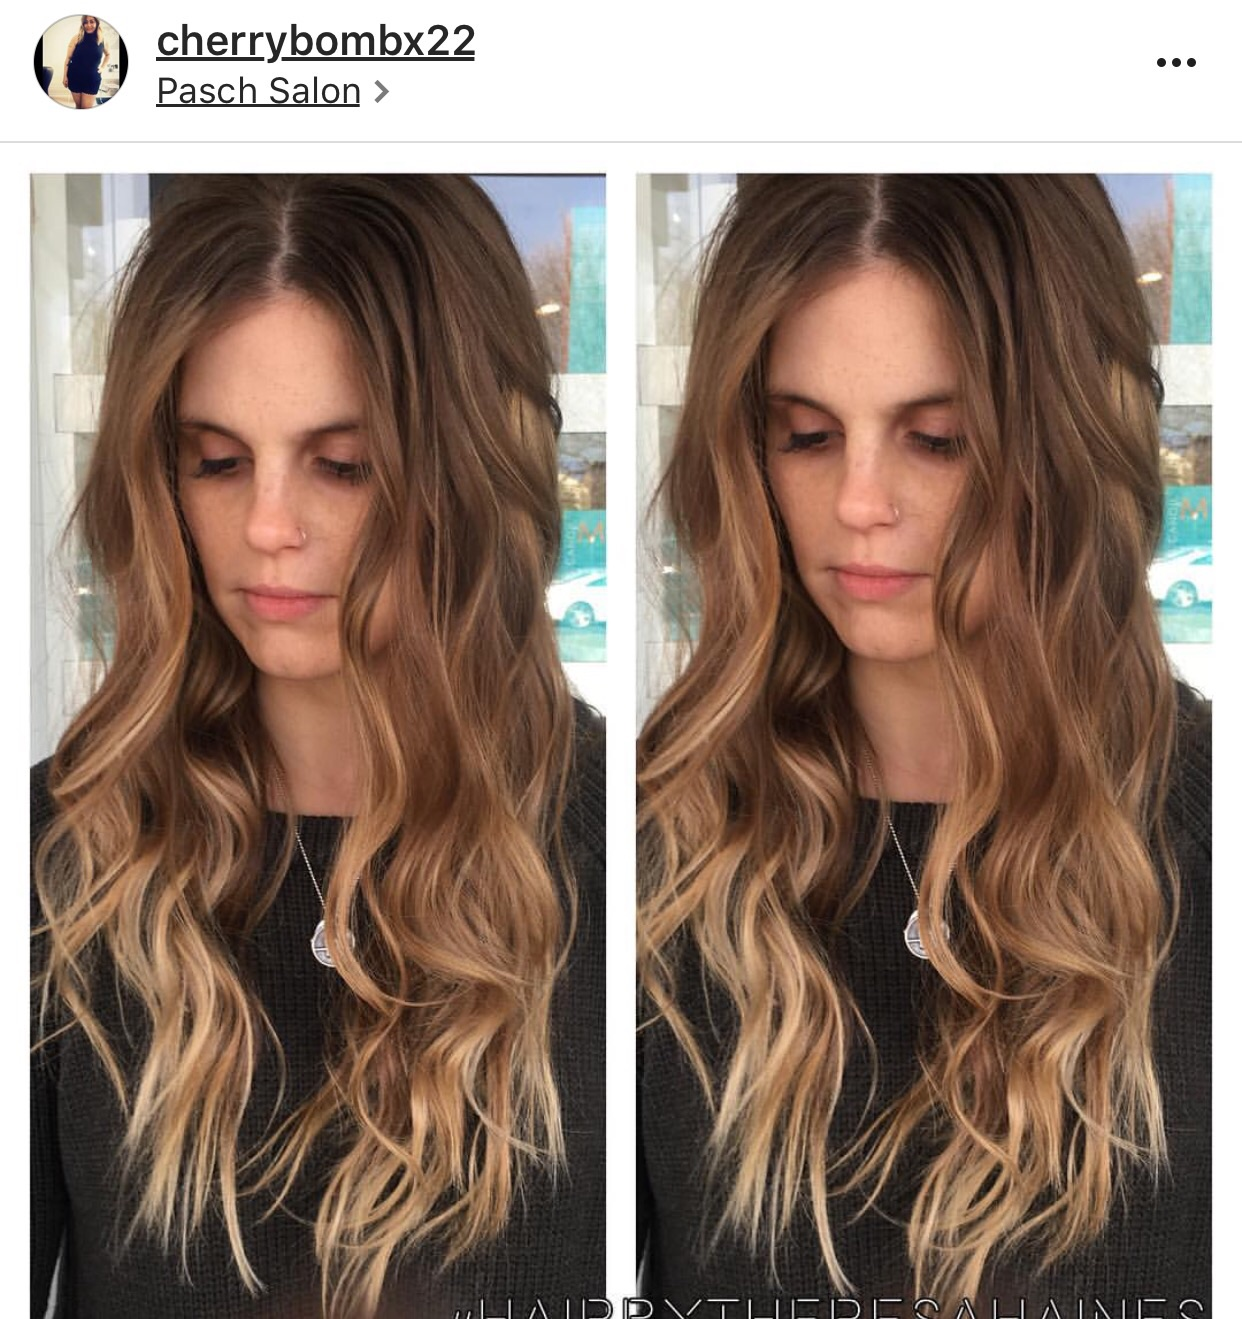 Theresa from Pasch Salon!   Check her out!! Follow her page!! Amazing Colorist